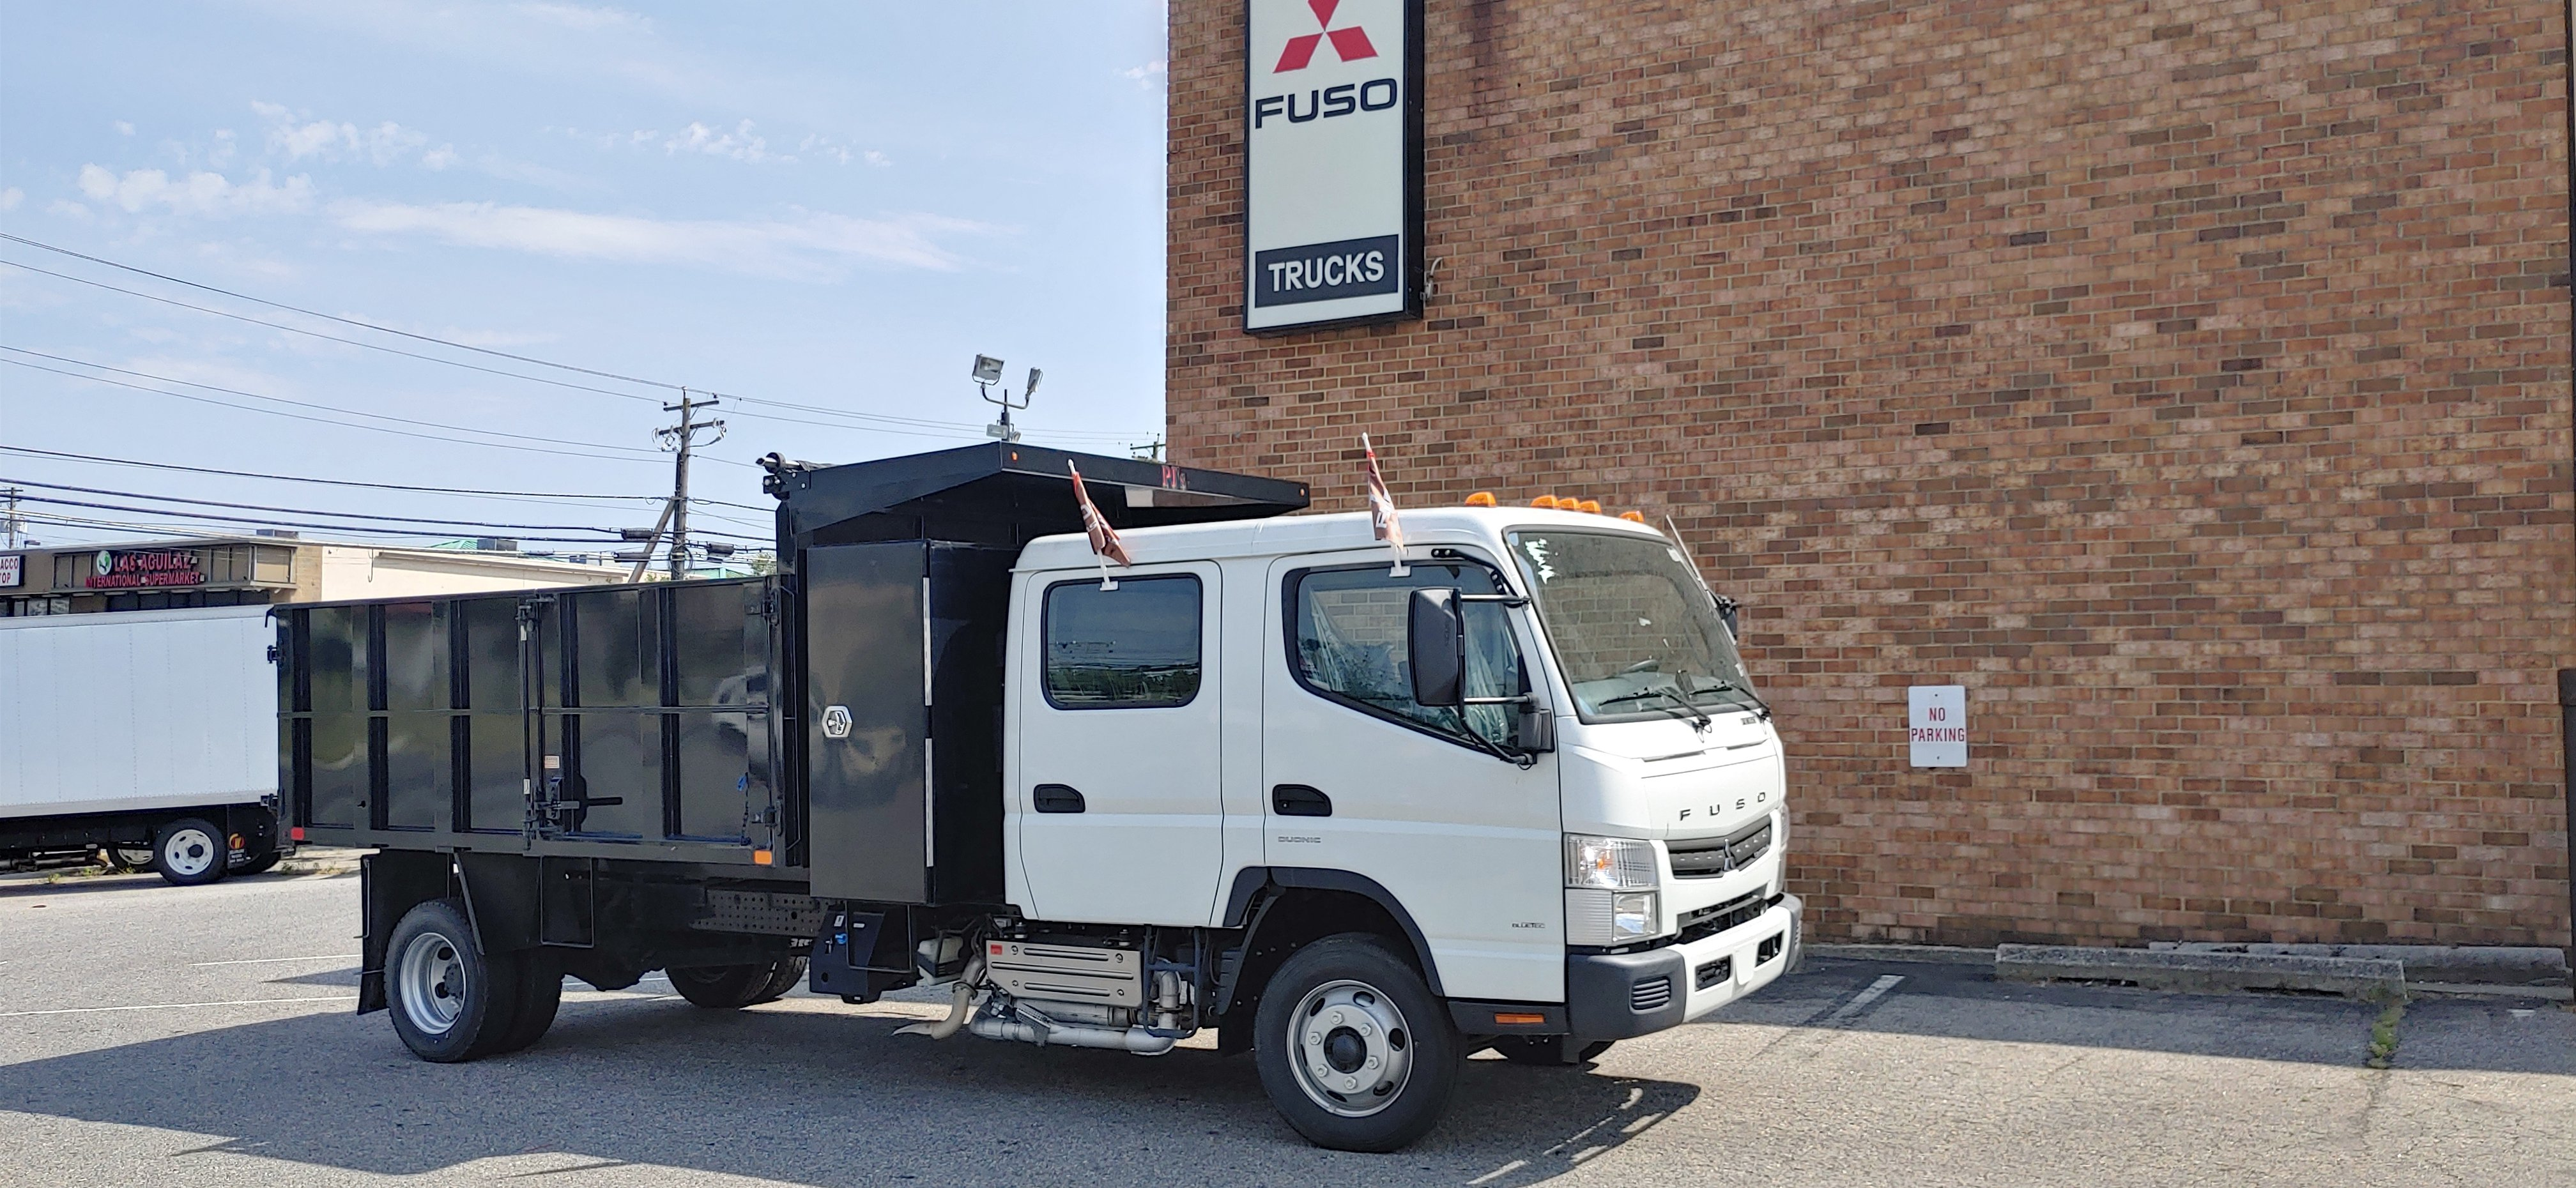 New 2017 Mitsubishi FE160 with Dump Body Crew Cab Recently Discounted 20200604_154521_HDR-e1591303242668-762x456